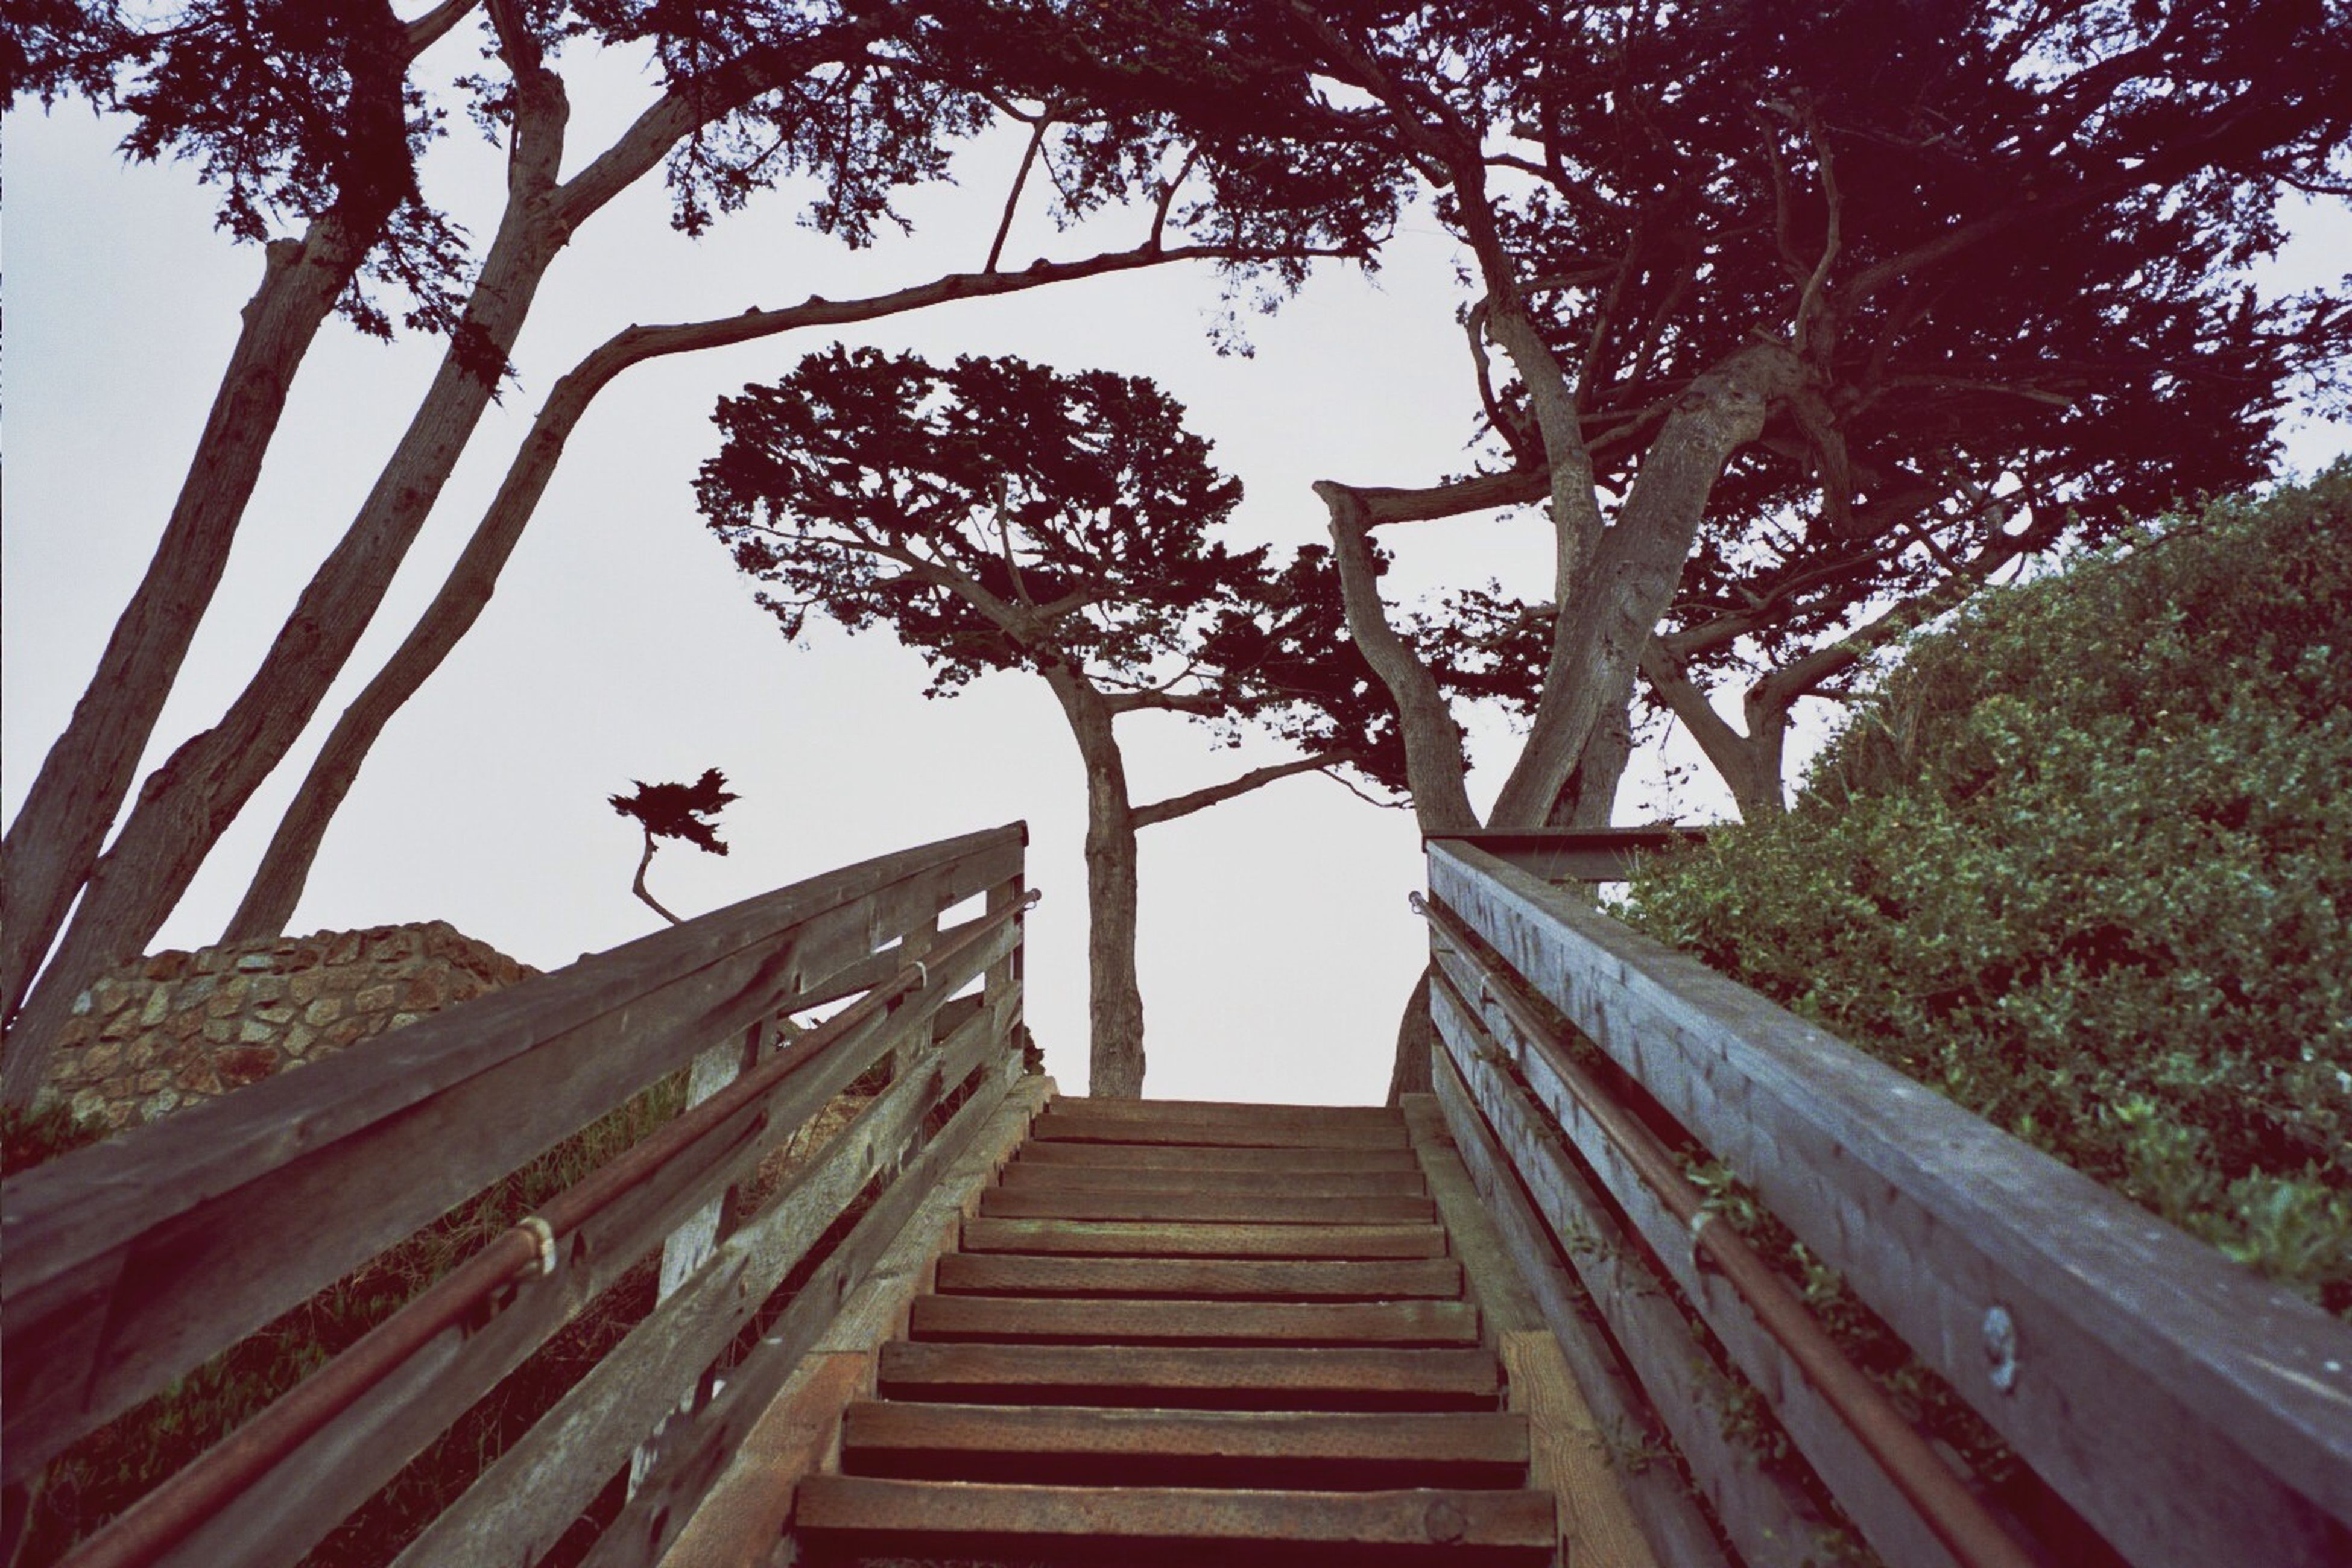 tree, wood - material, the way forward, low angle view, branch, nature, railing, clear sky, boardwalk, growth, steps, wood, full length, forest, wooden, tree trunk, outdoors, sky, day, sunlight